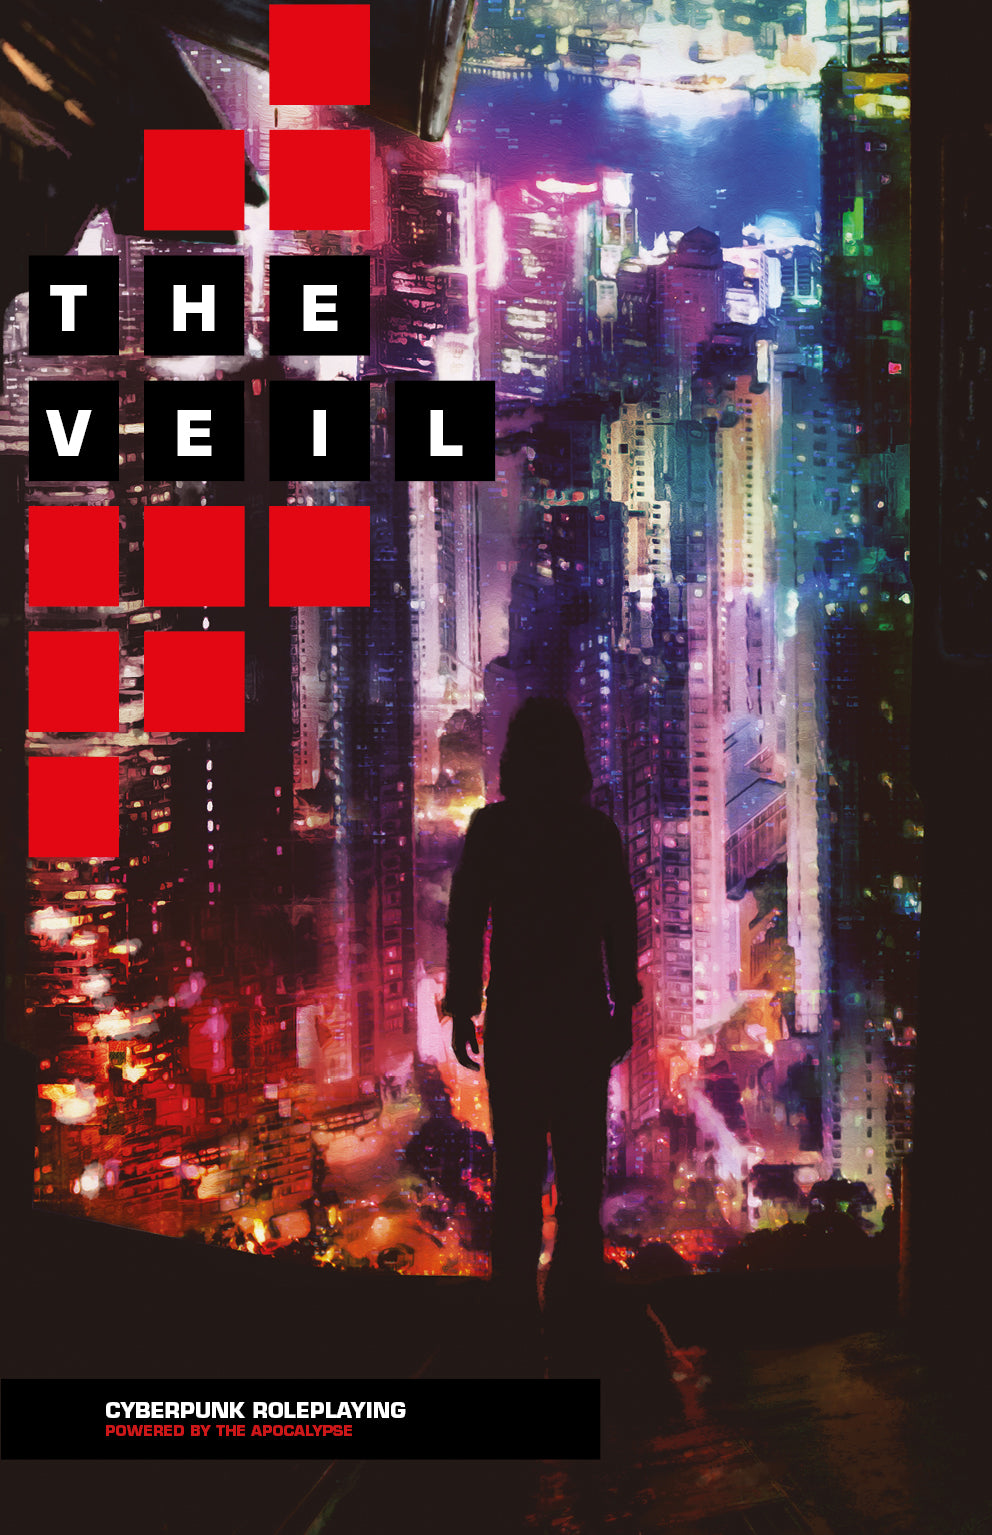 The Veil: Cyberpunk Roleplaying Powered by the Apocalypse (Softcover + PDF Book)